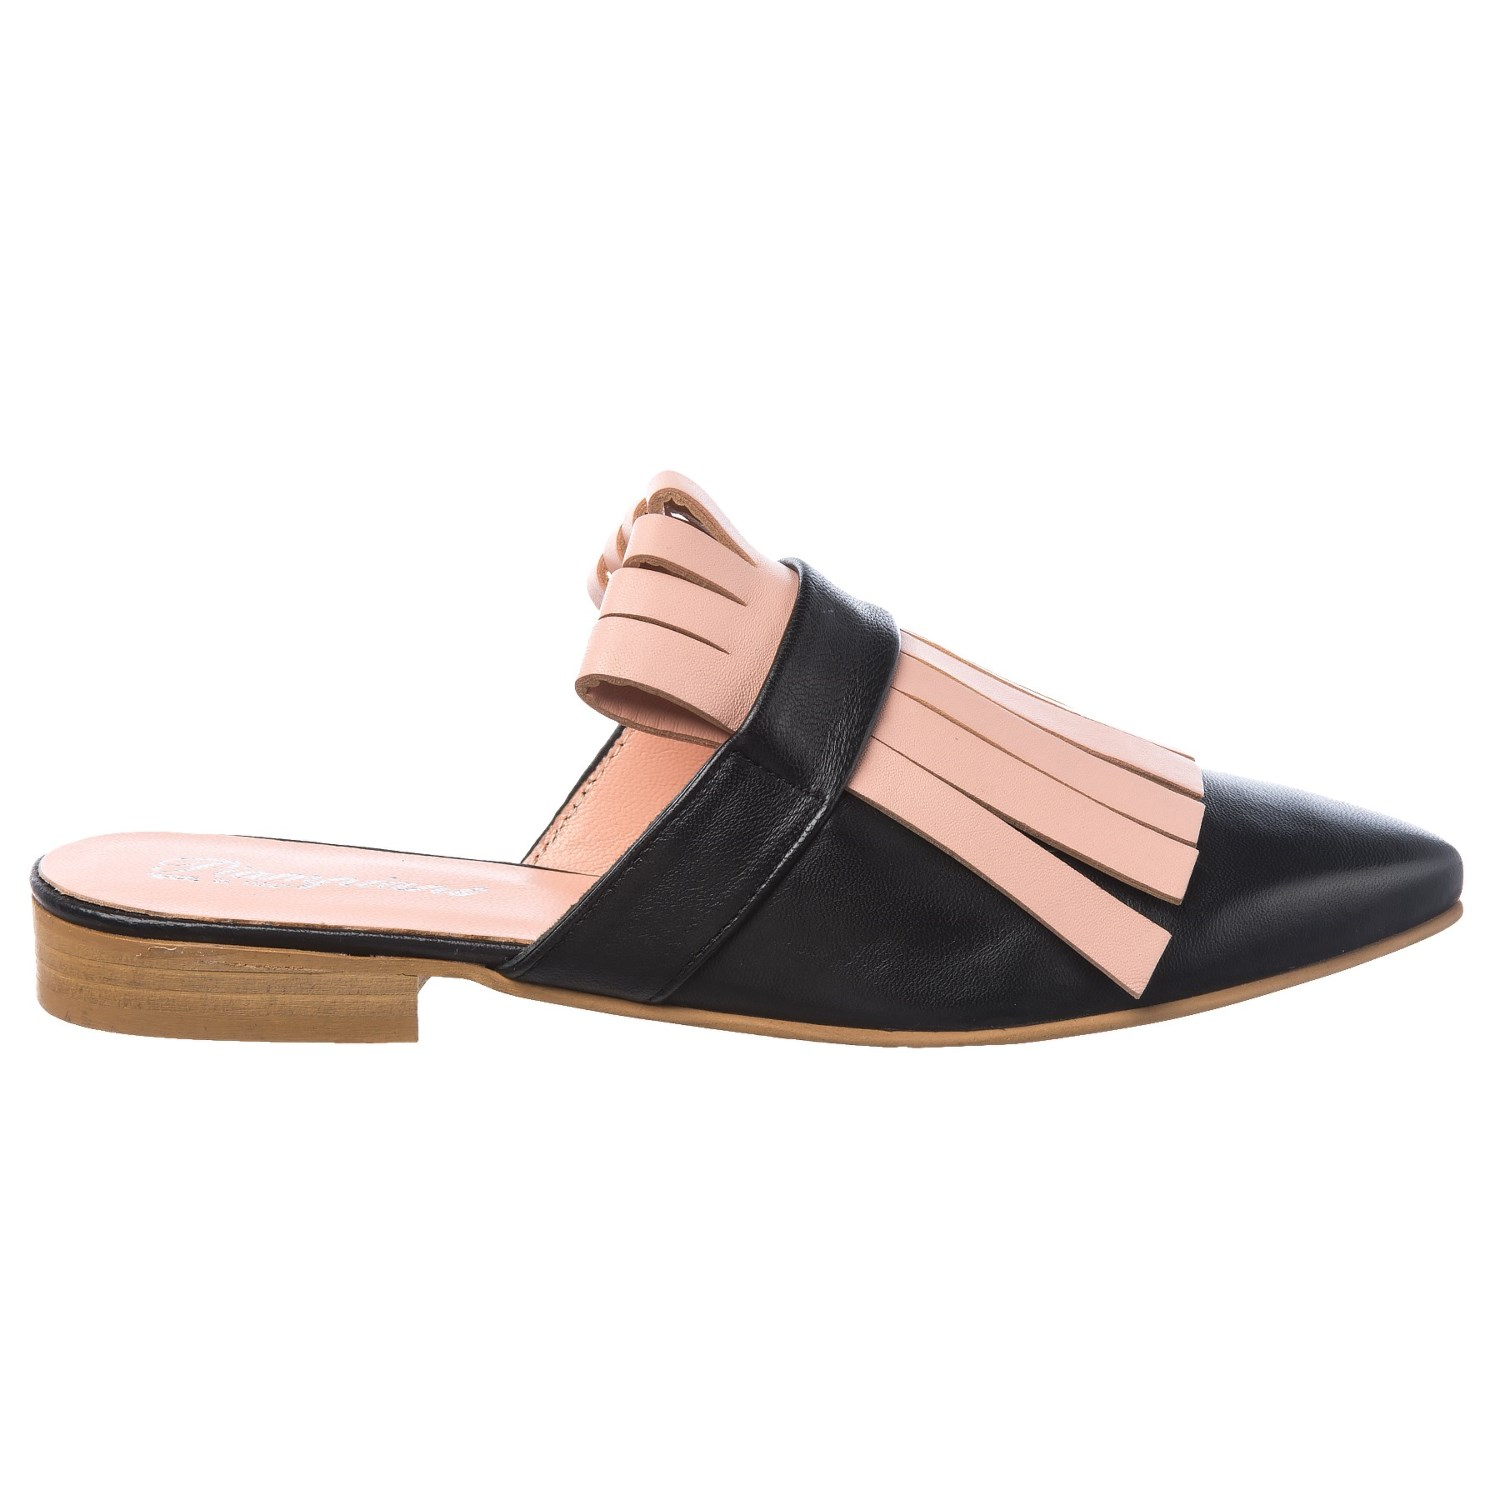 discount footlocker PIAMPIANI Loafers collections for sale e3Wys4Pe